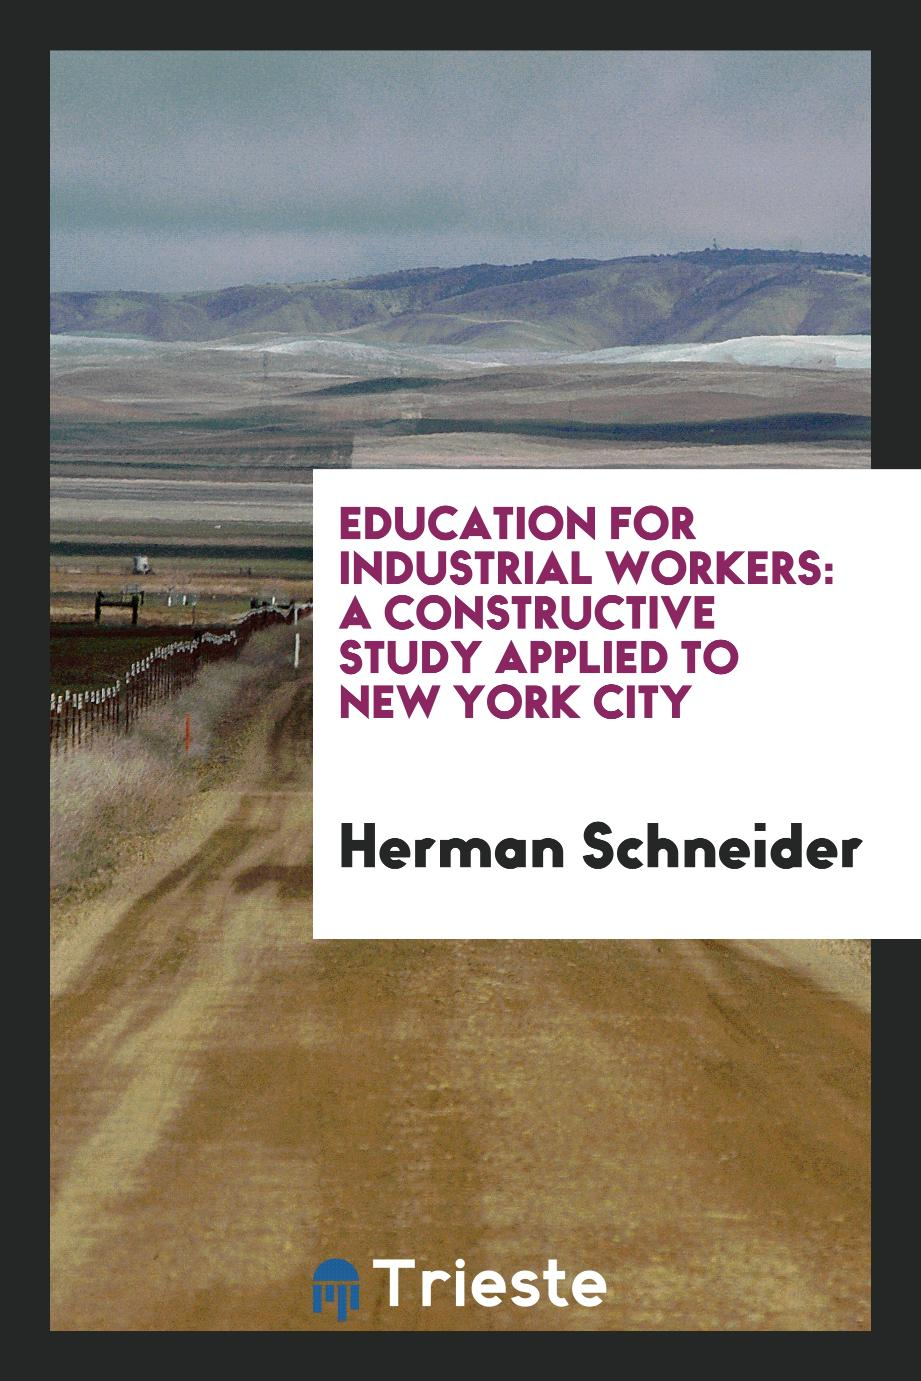 Education for Industrial Workers: A Constructive Study Applied to New York City